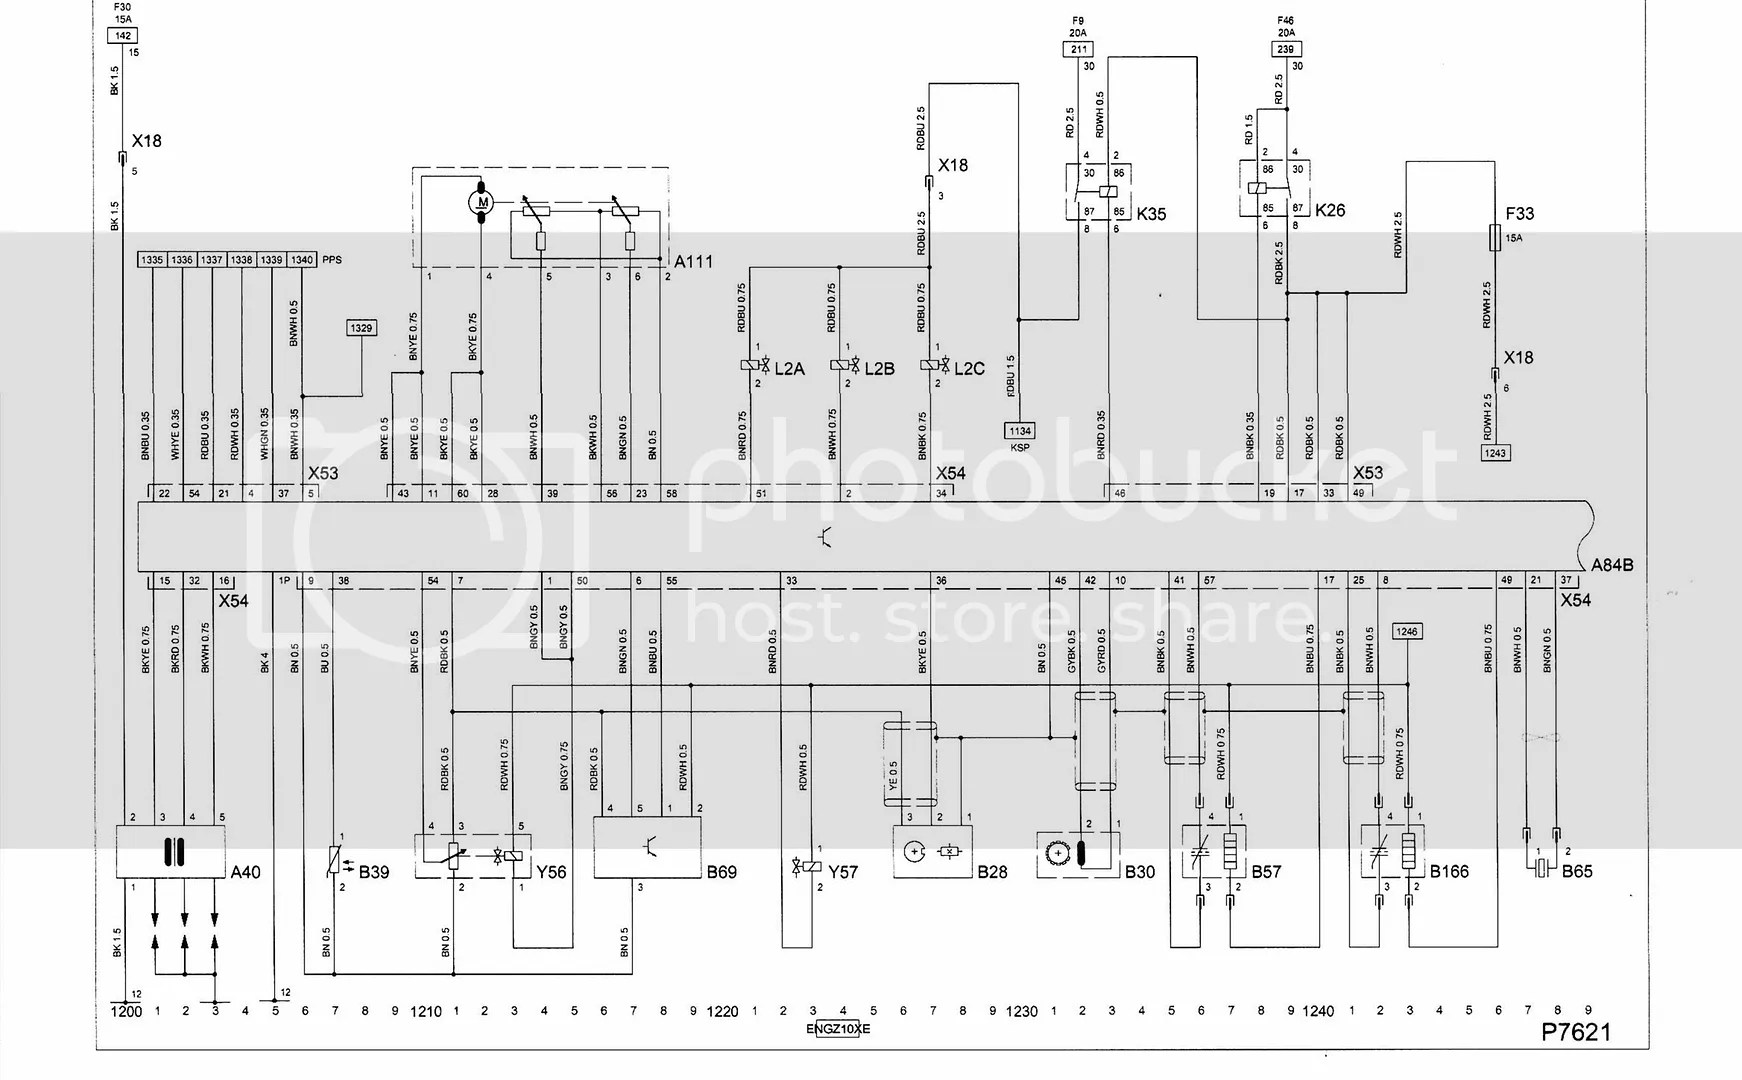 2001 1.0 corsa wiring diagram needed????